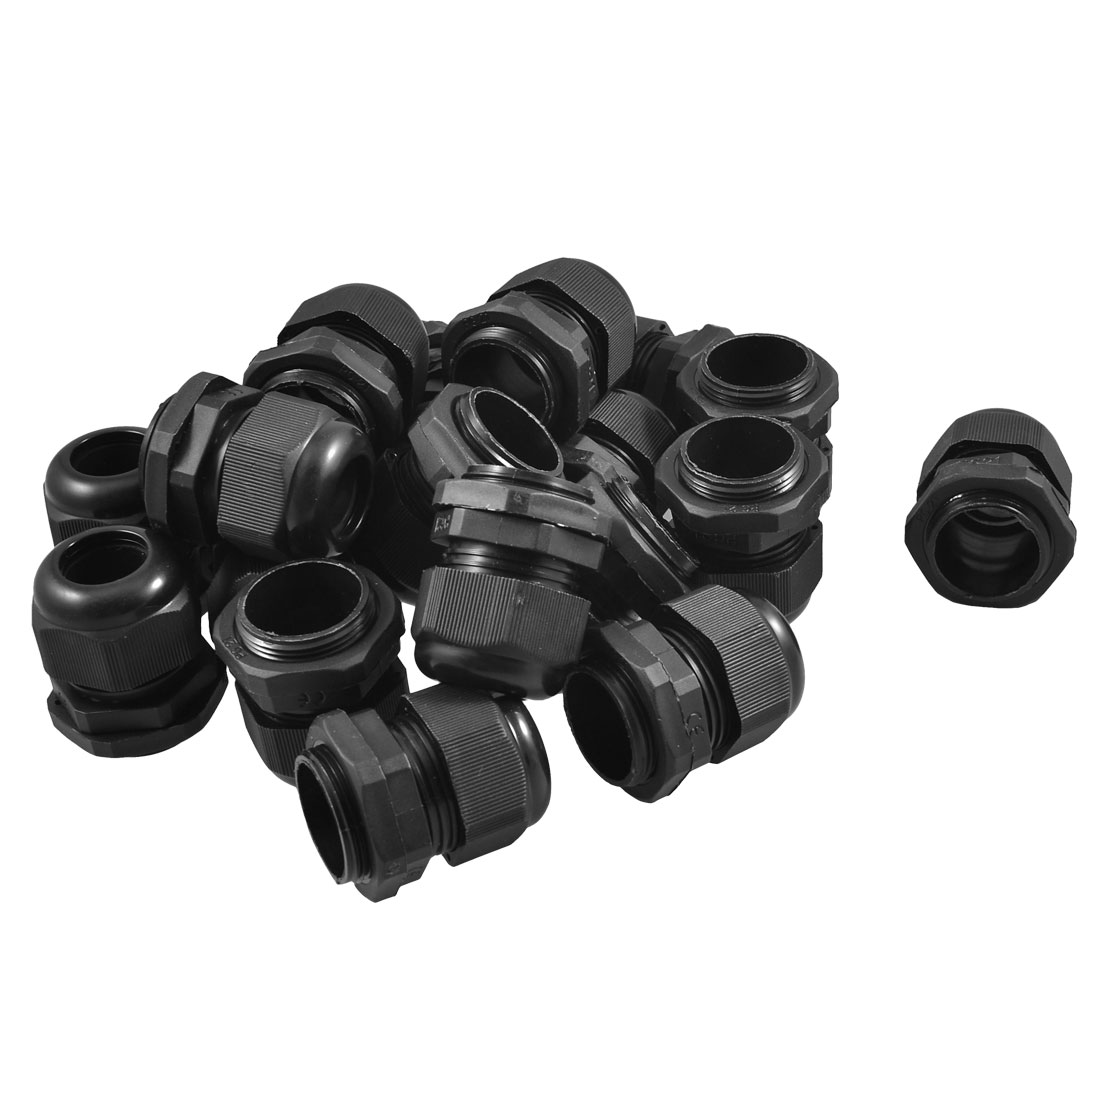 Black Plastic Waterproof Connector PG21 13-18mm Diameter Cable Gland 20PCS